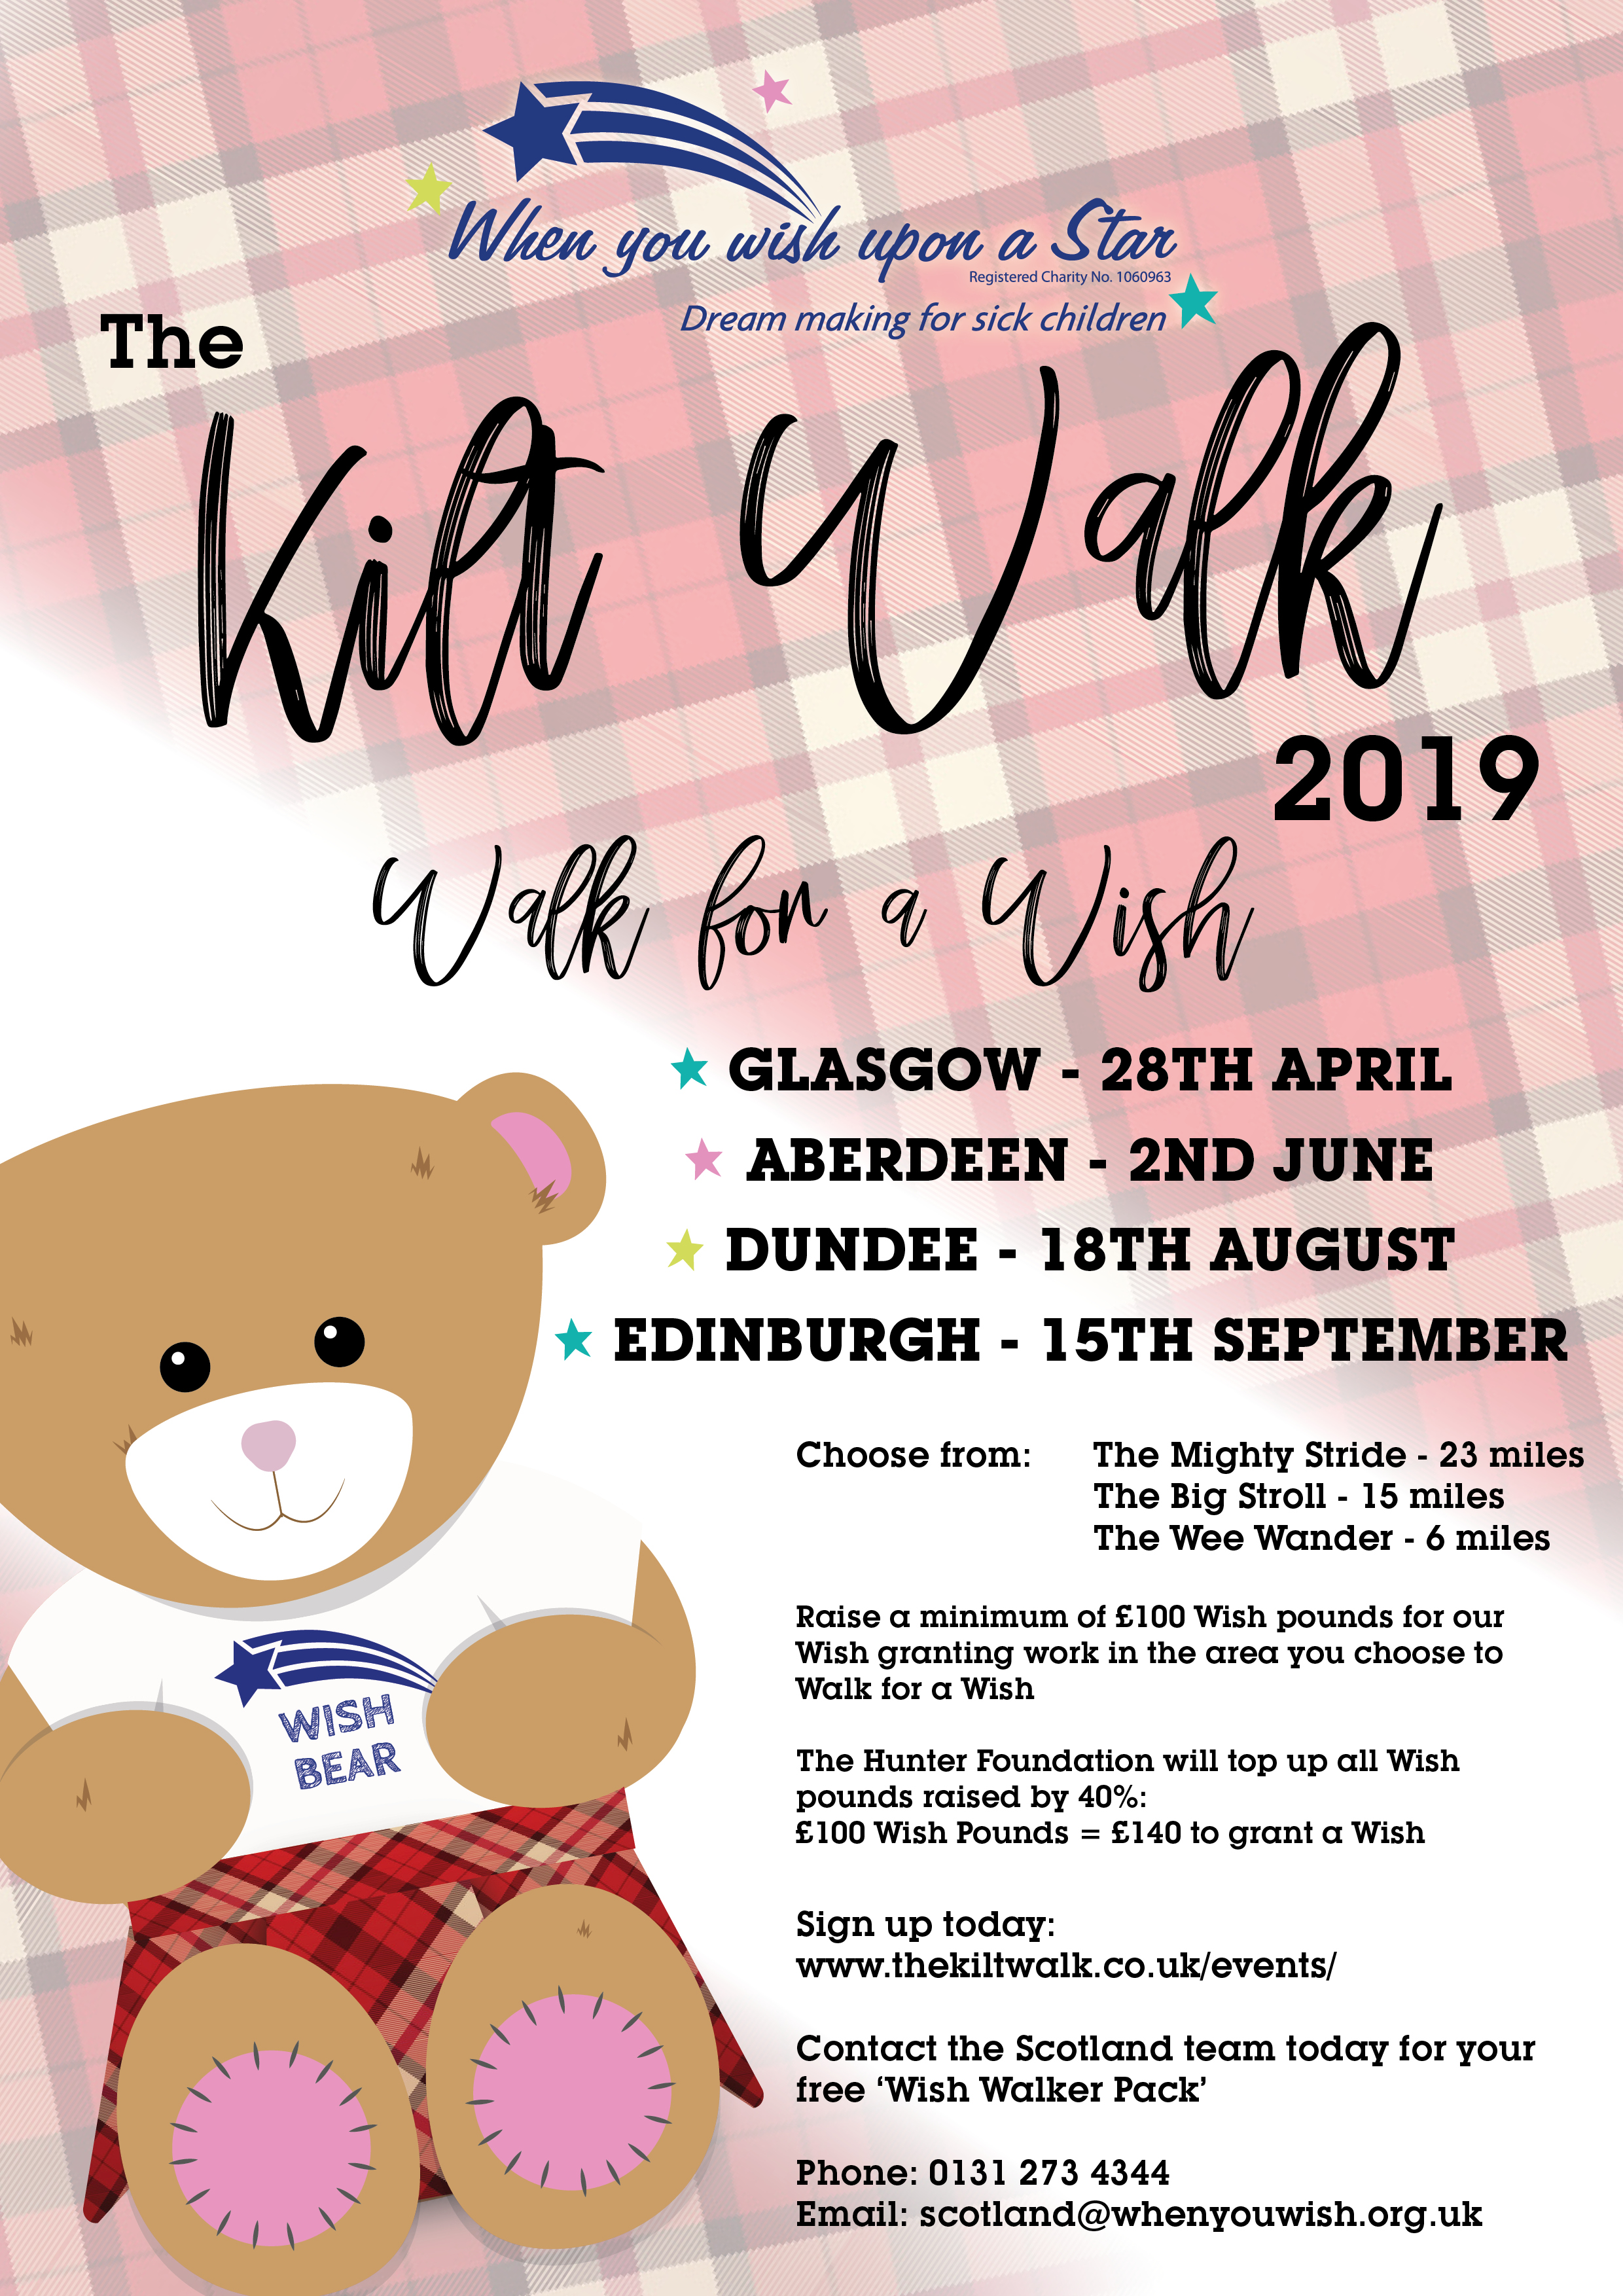 Kiltwalk 2019 - Glasgow